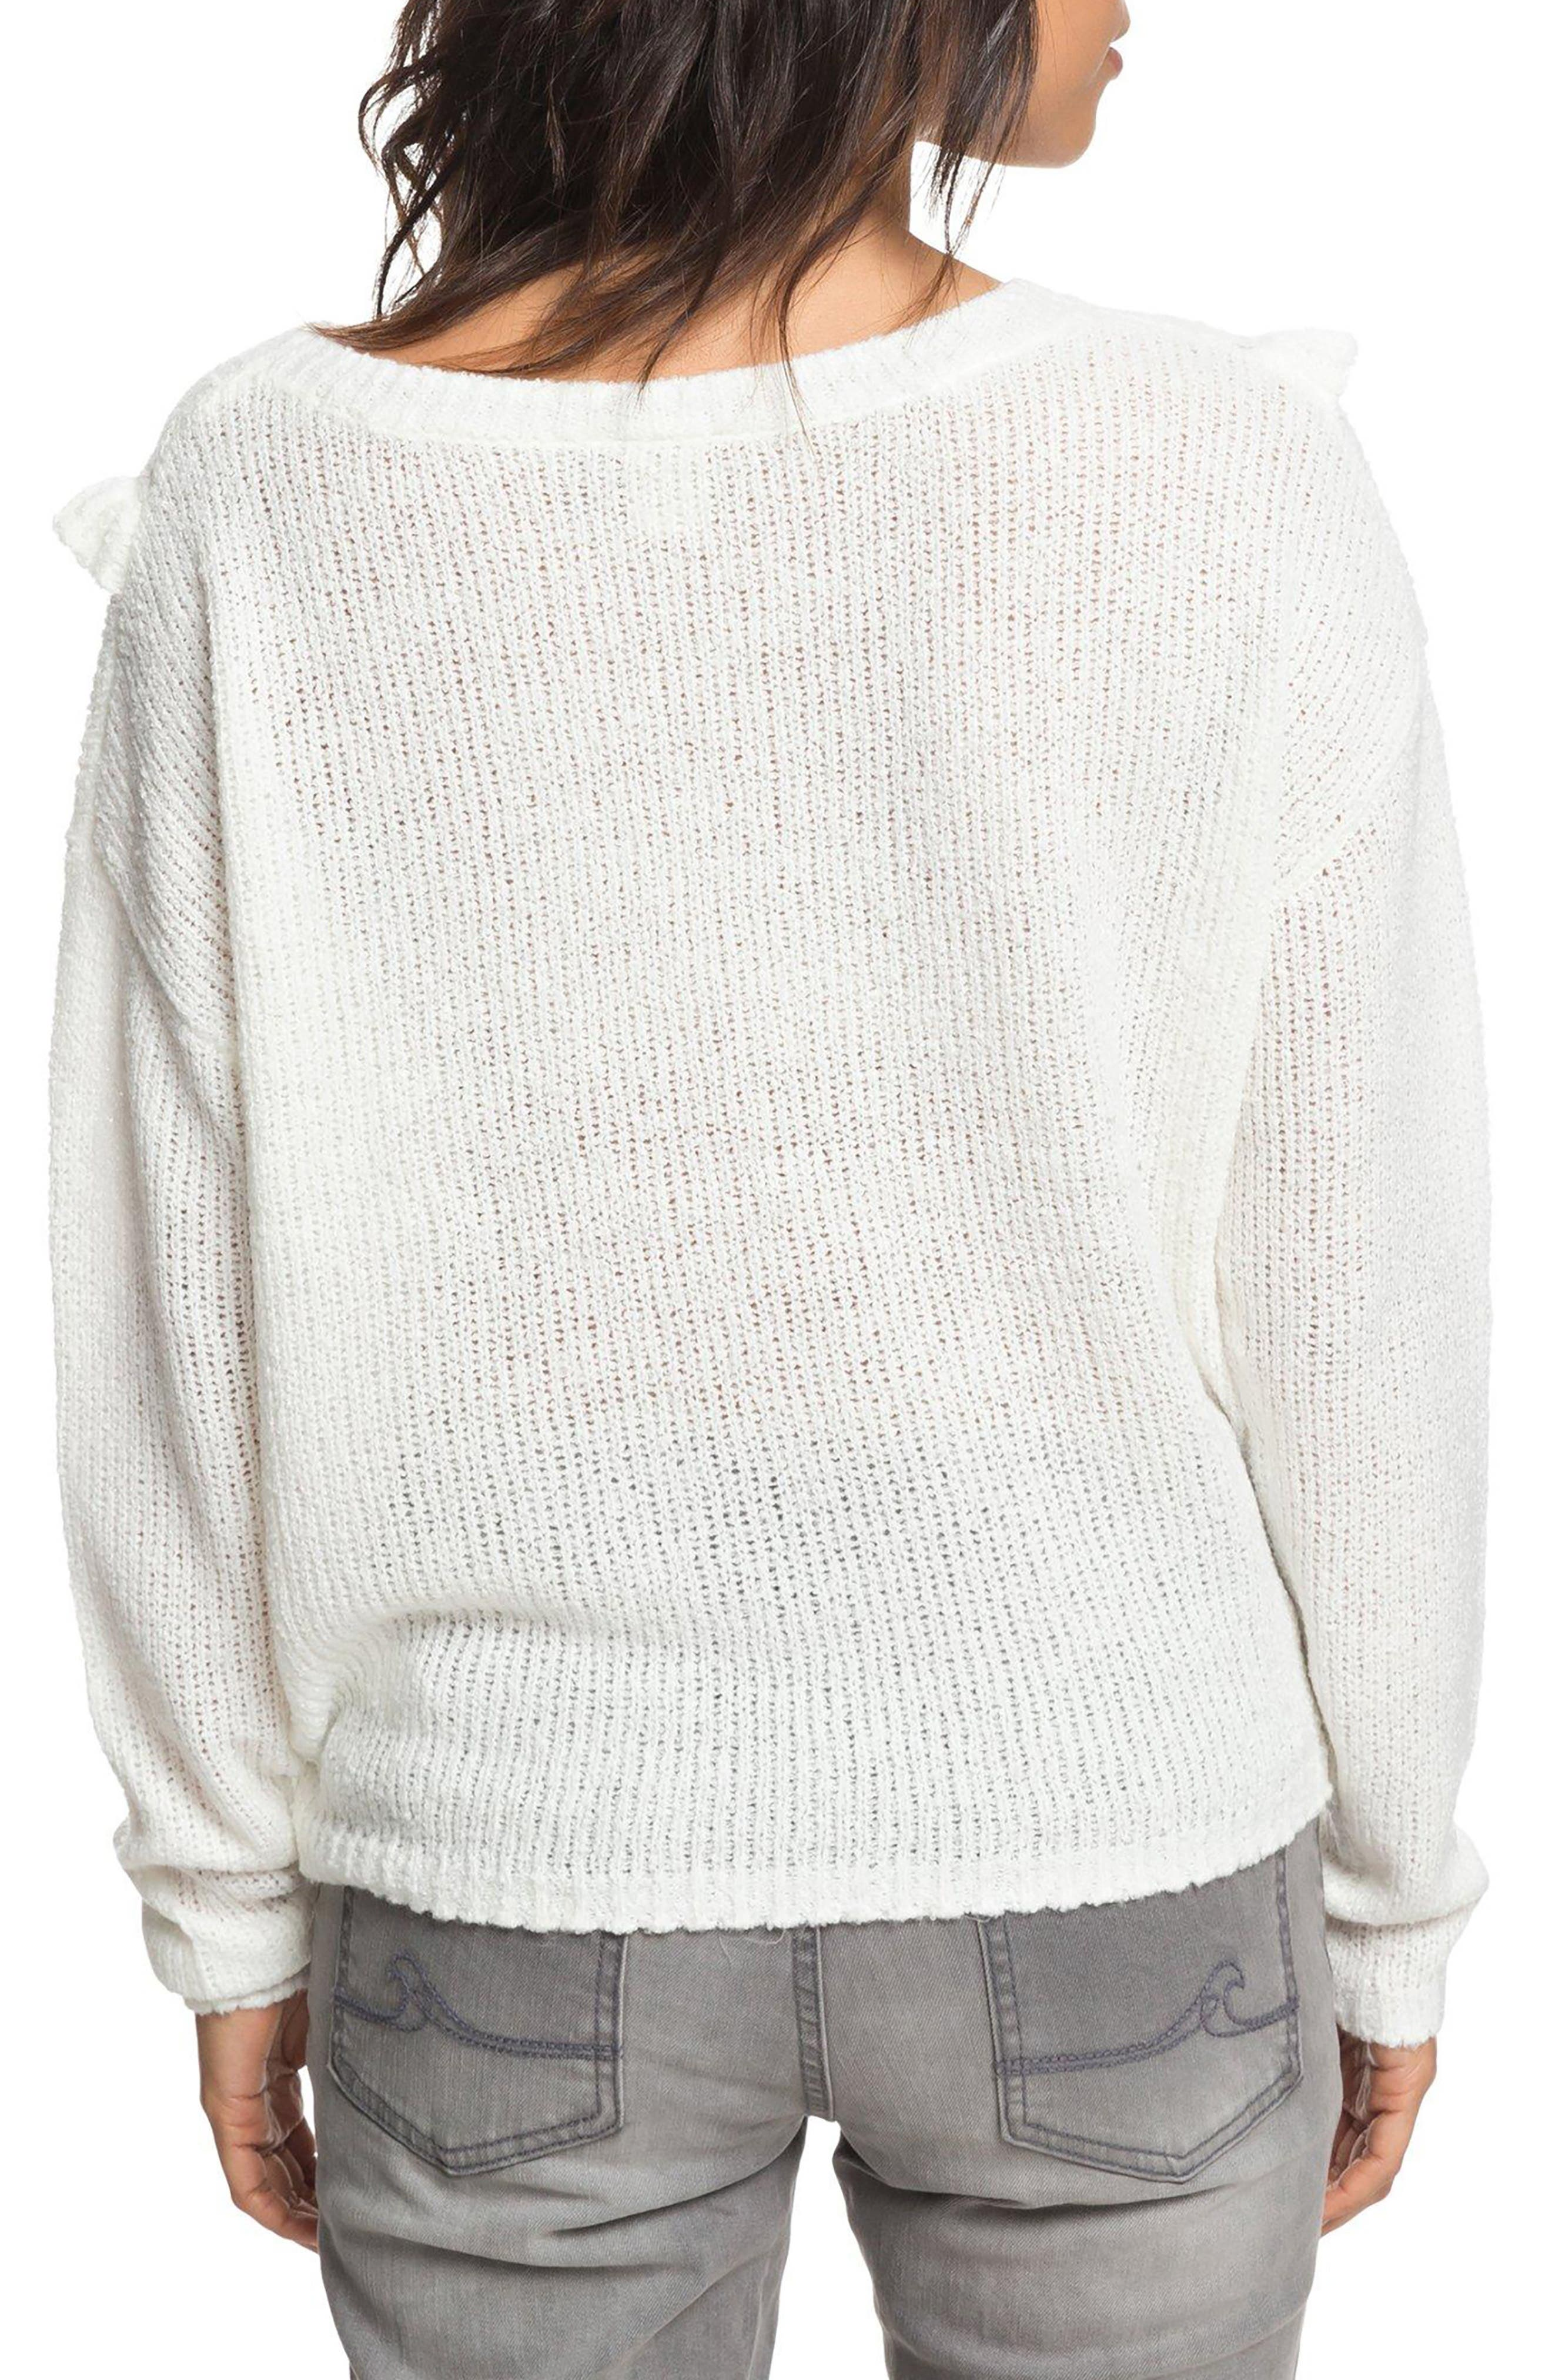 One Fine Stay Ruffle Sweater,                             Alternate thumbnail 2, color,                             MARSHMALLOW